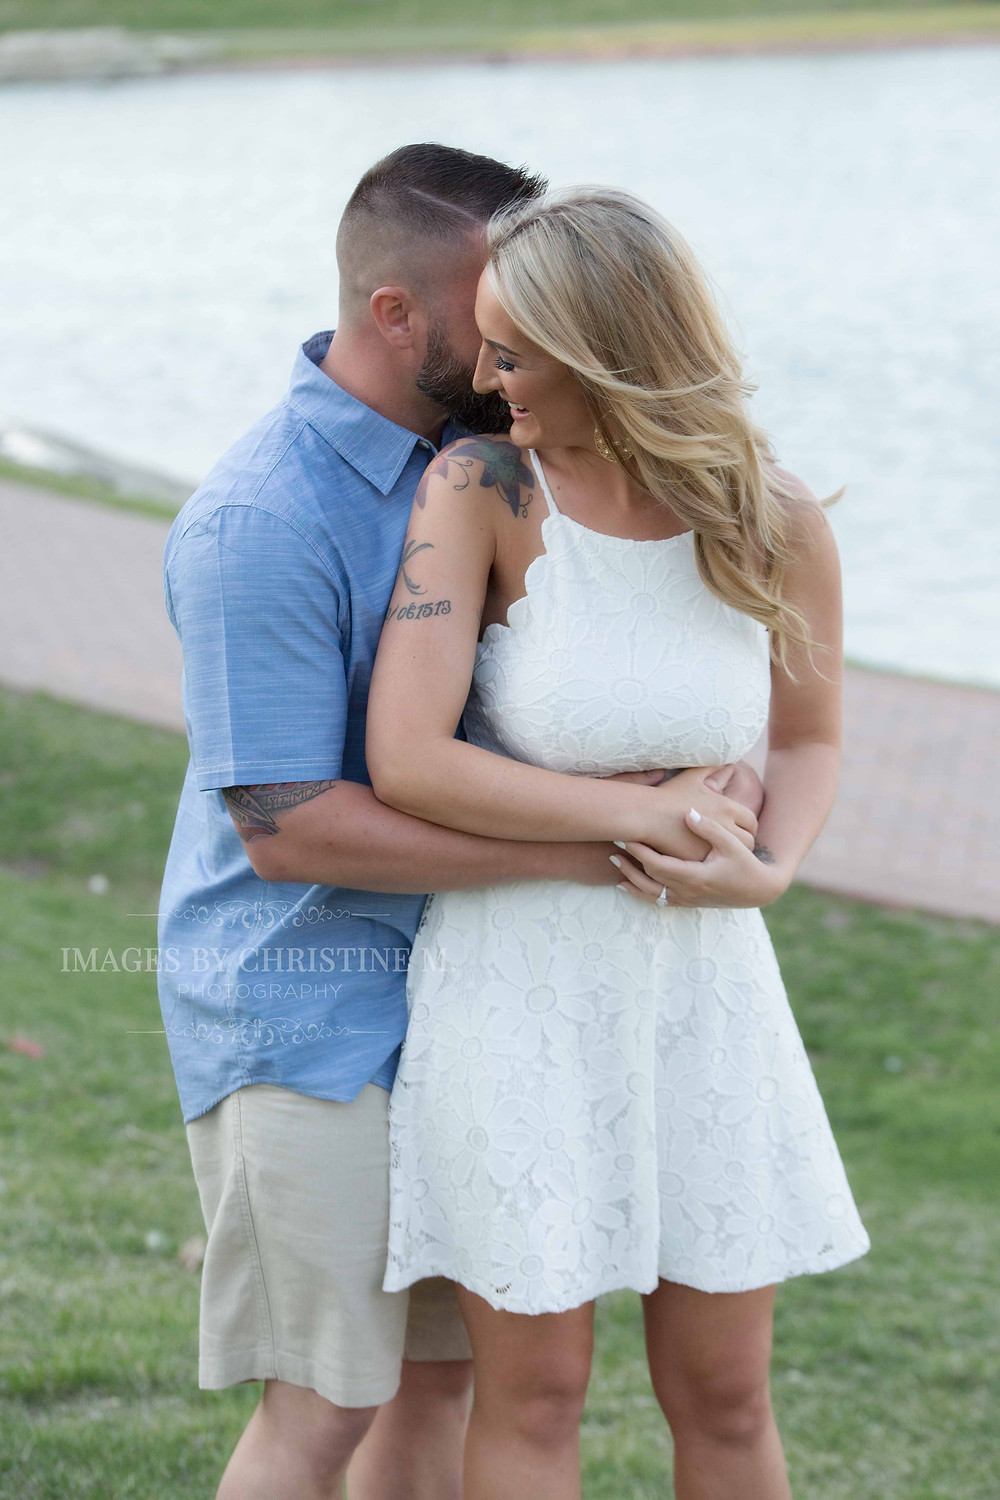 Playful engagment outdoor pictures